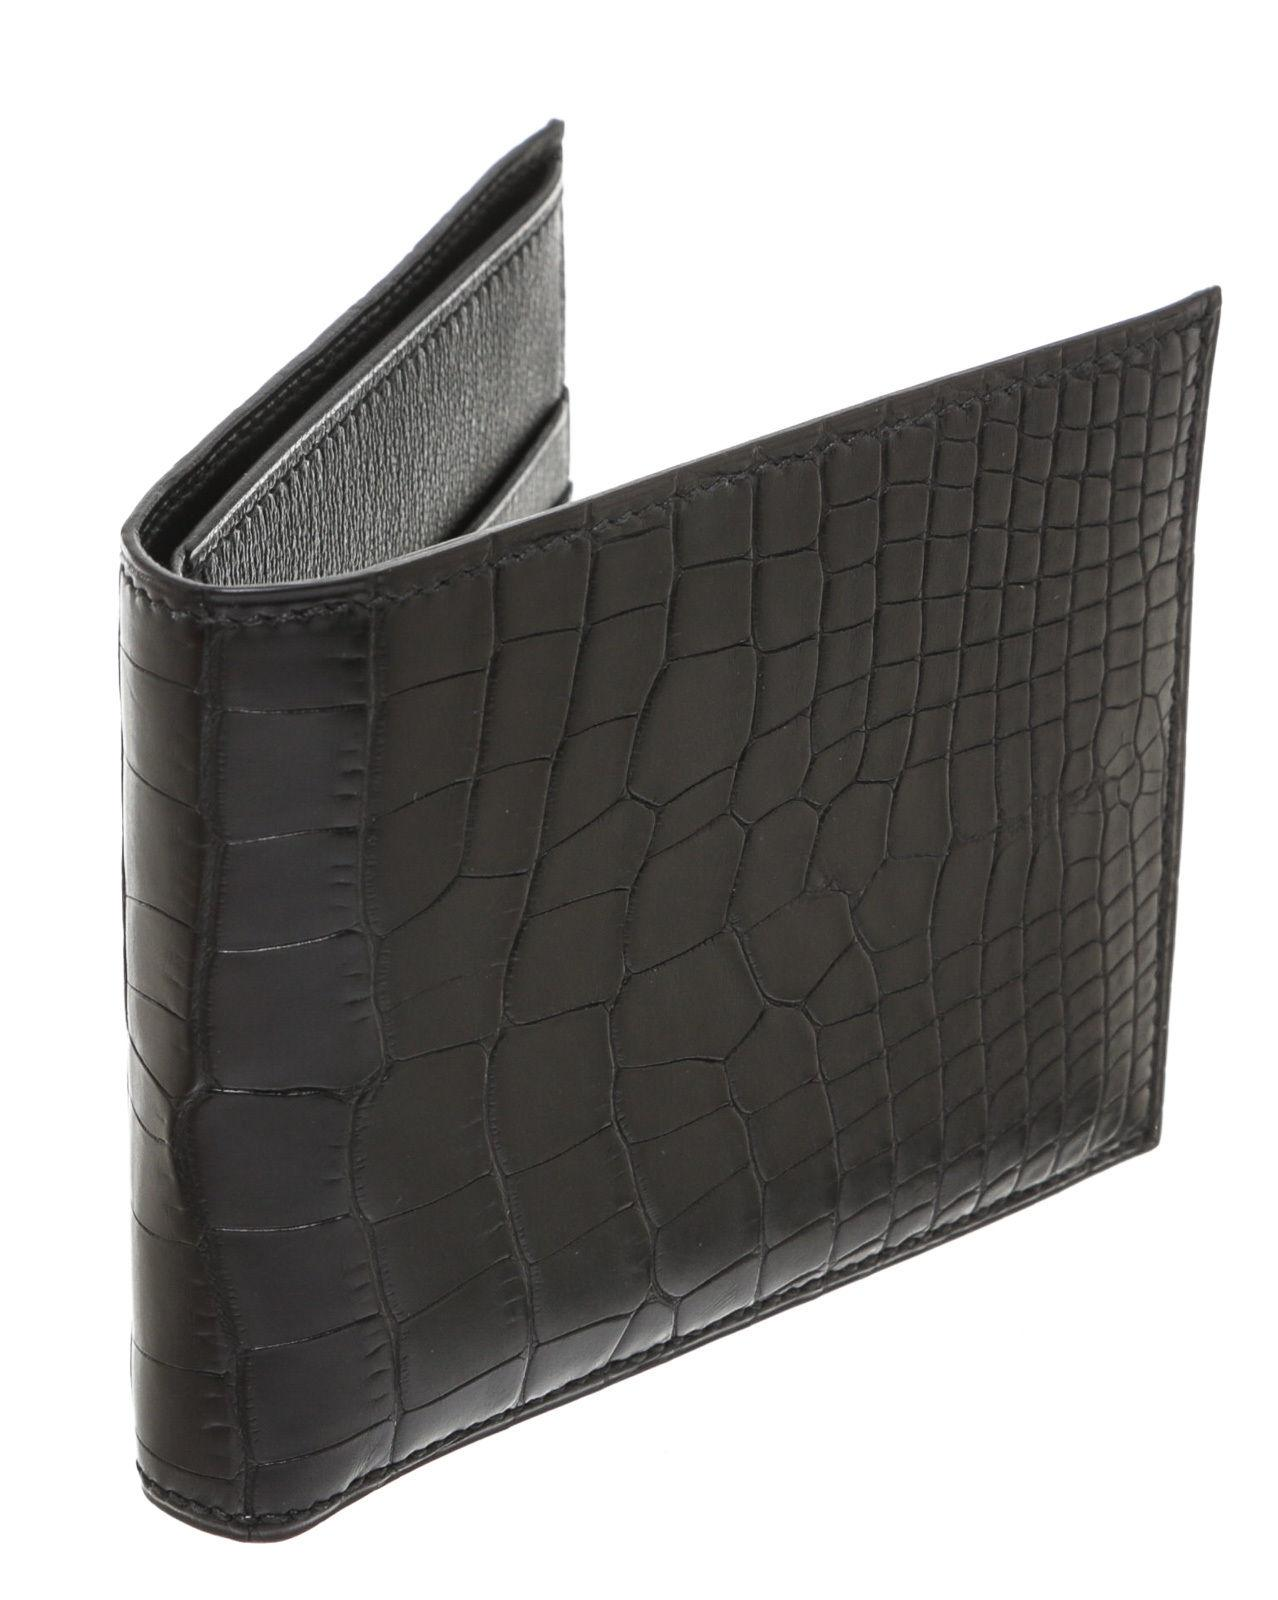 342885a486 ... australia hermès hermes black alligator mens wallet 205826. 1234567  87a50 da035